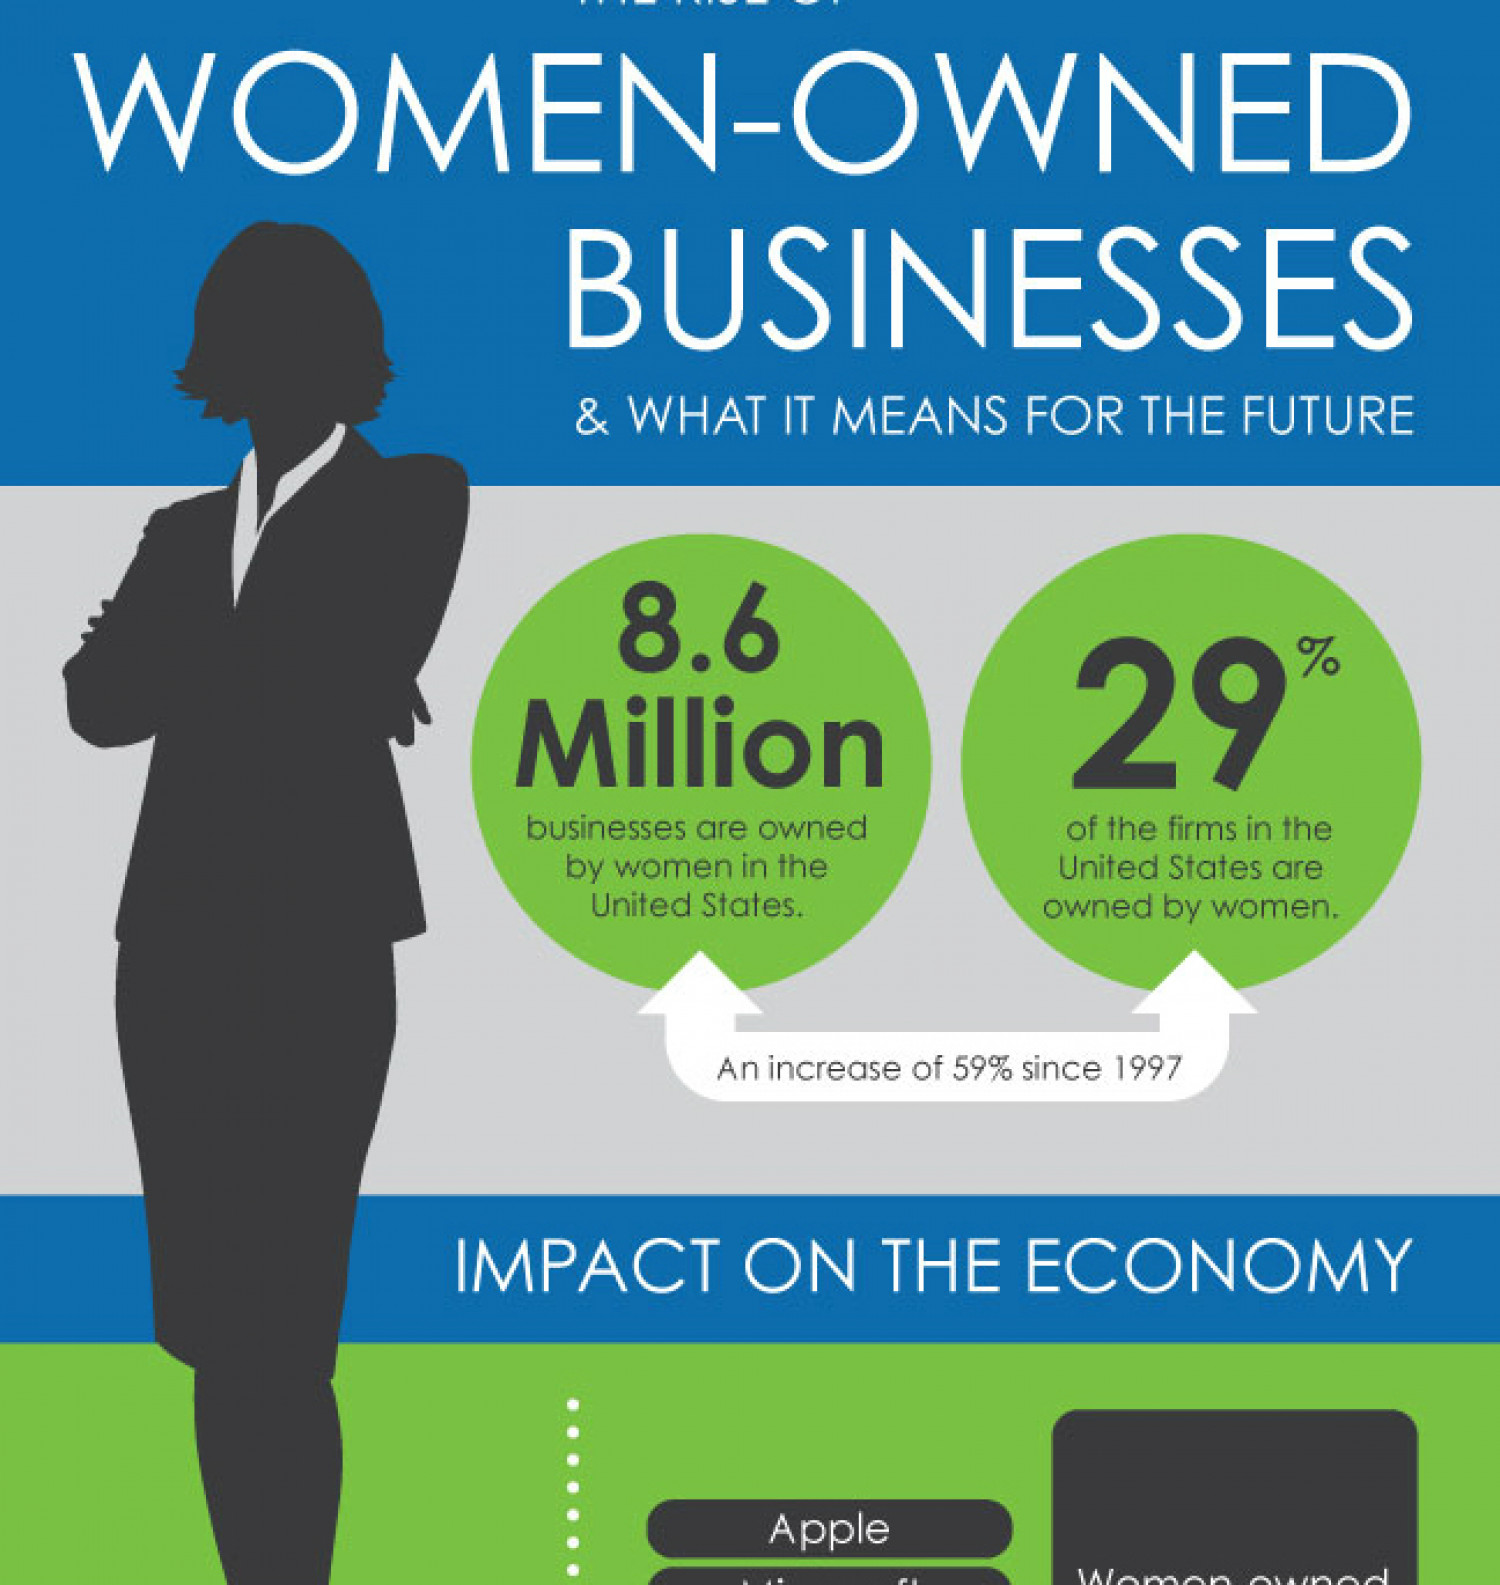 The Rise of Women-Owned Businesses & What It Means for the Future Infographic